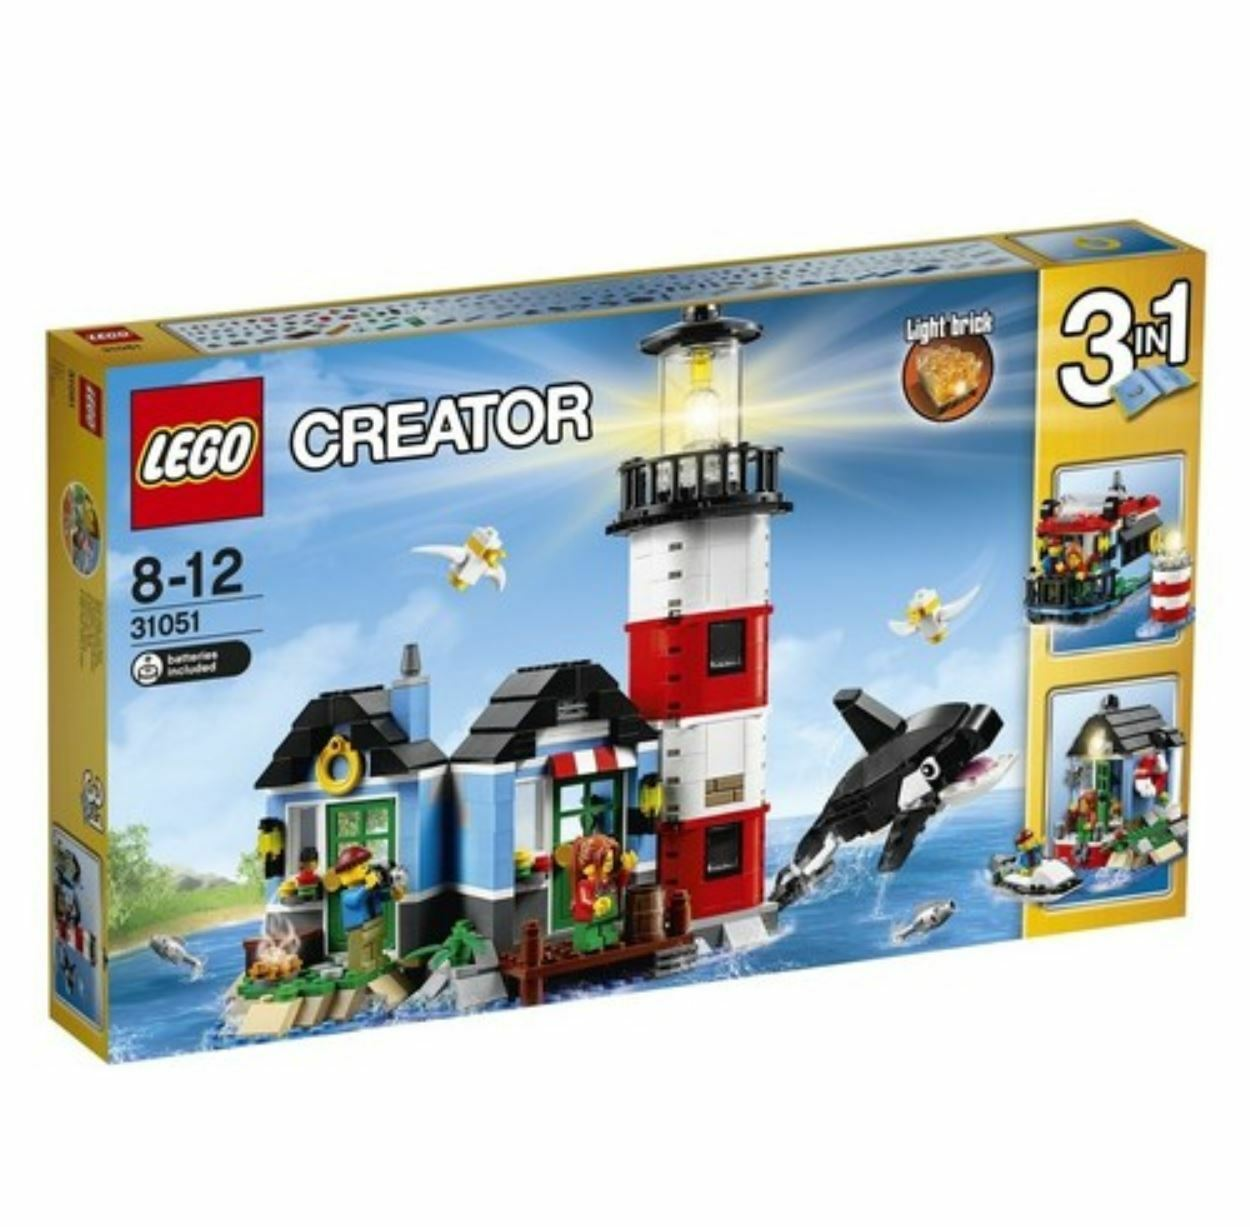 [LEGO] CREATOR ljushouse Point 31051 2016 Version fri Shipping